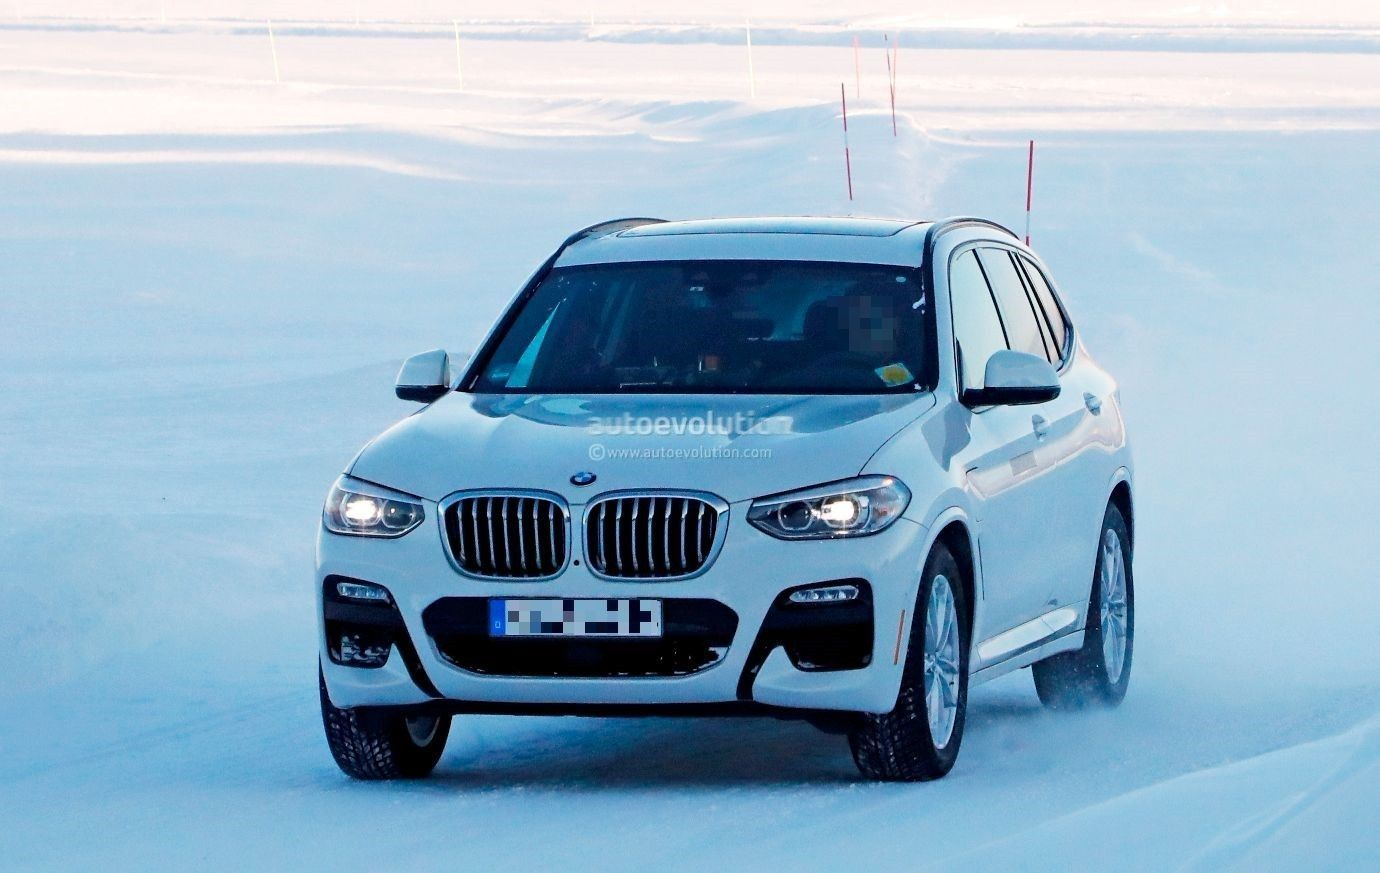 The 2020 Bmw Ix3 Is Validated This Is The Fully Electric Crossover Which Will At First Concern The Chinese Market We Make Bmw Latest Bmw Electric Crossover